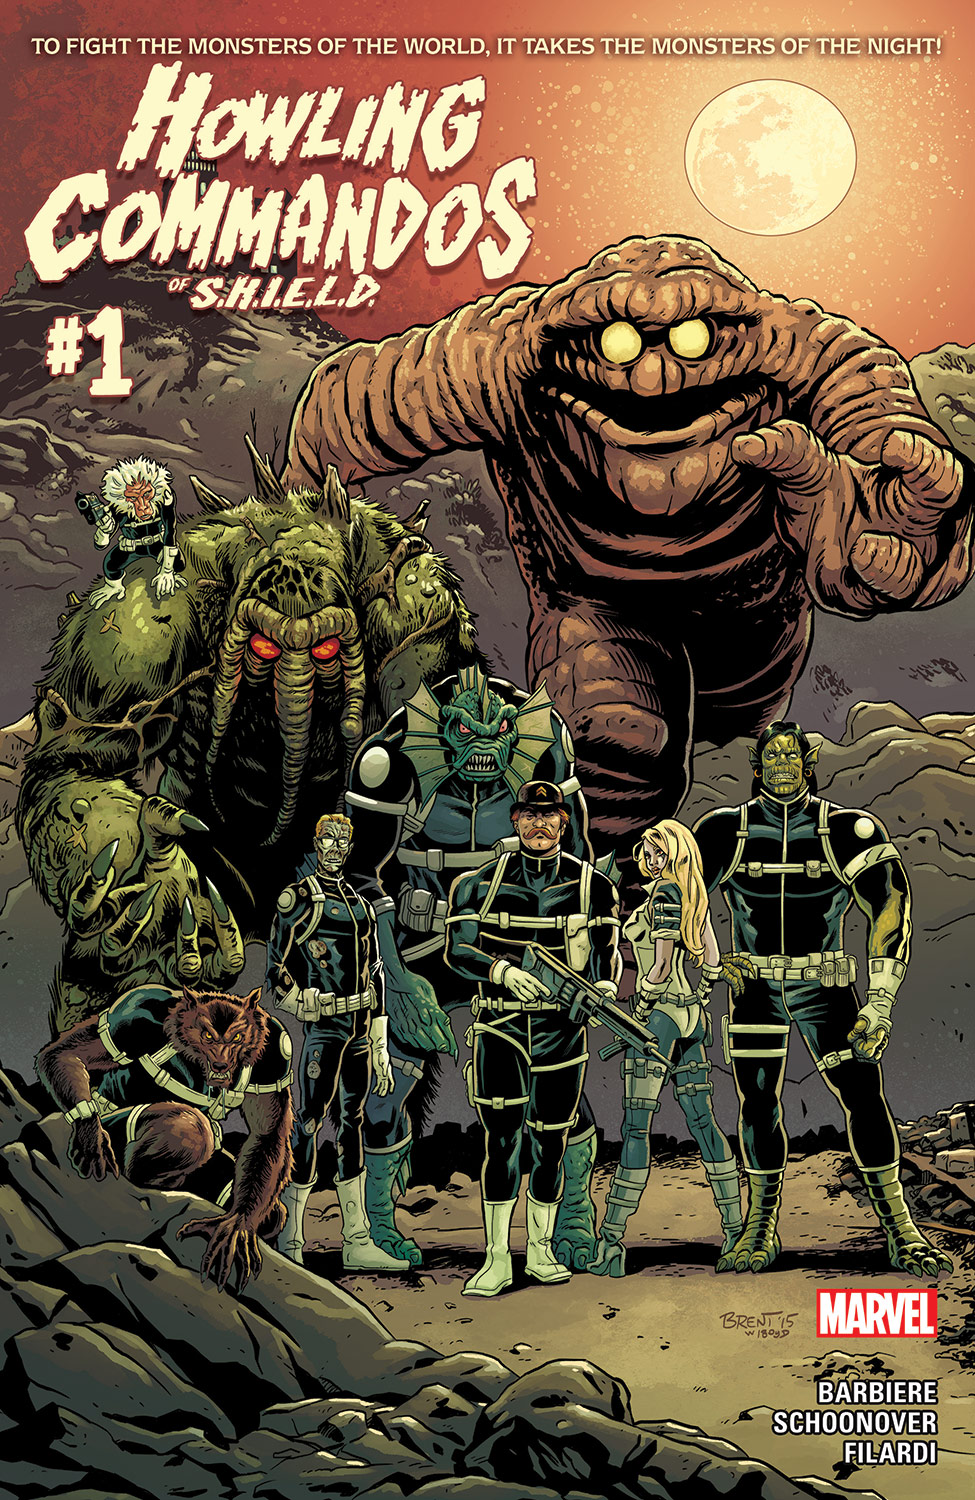 Howling Commandos of S.H.I.E.L.D. (2015) #1